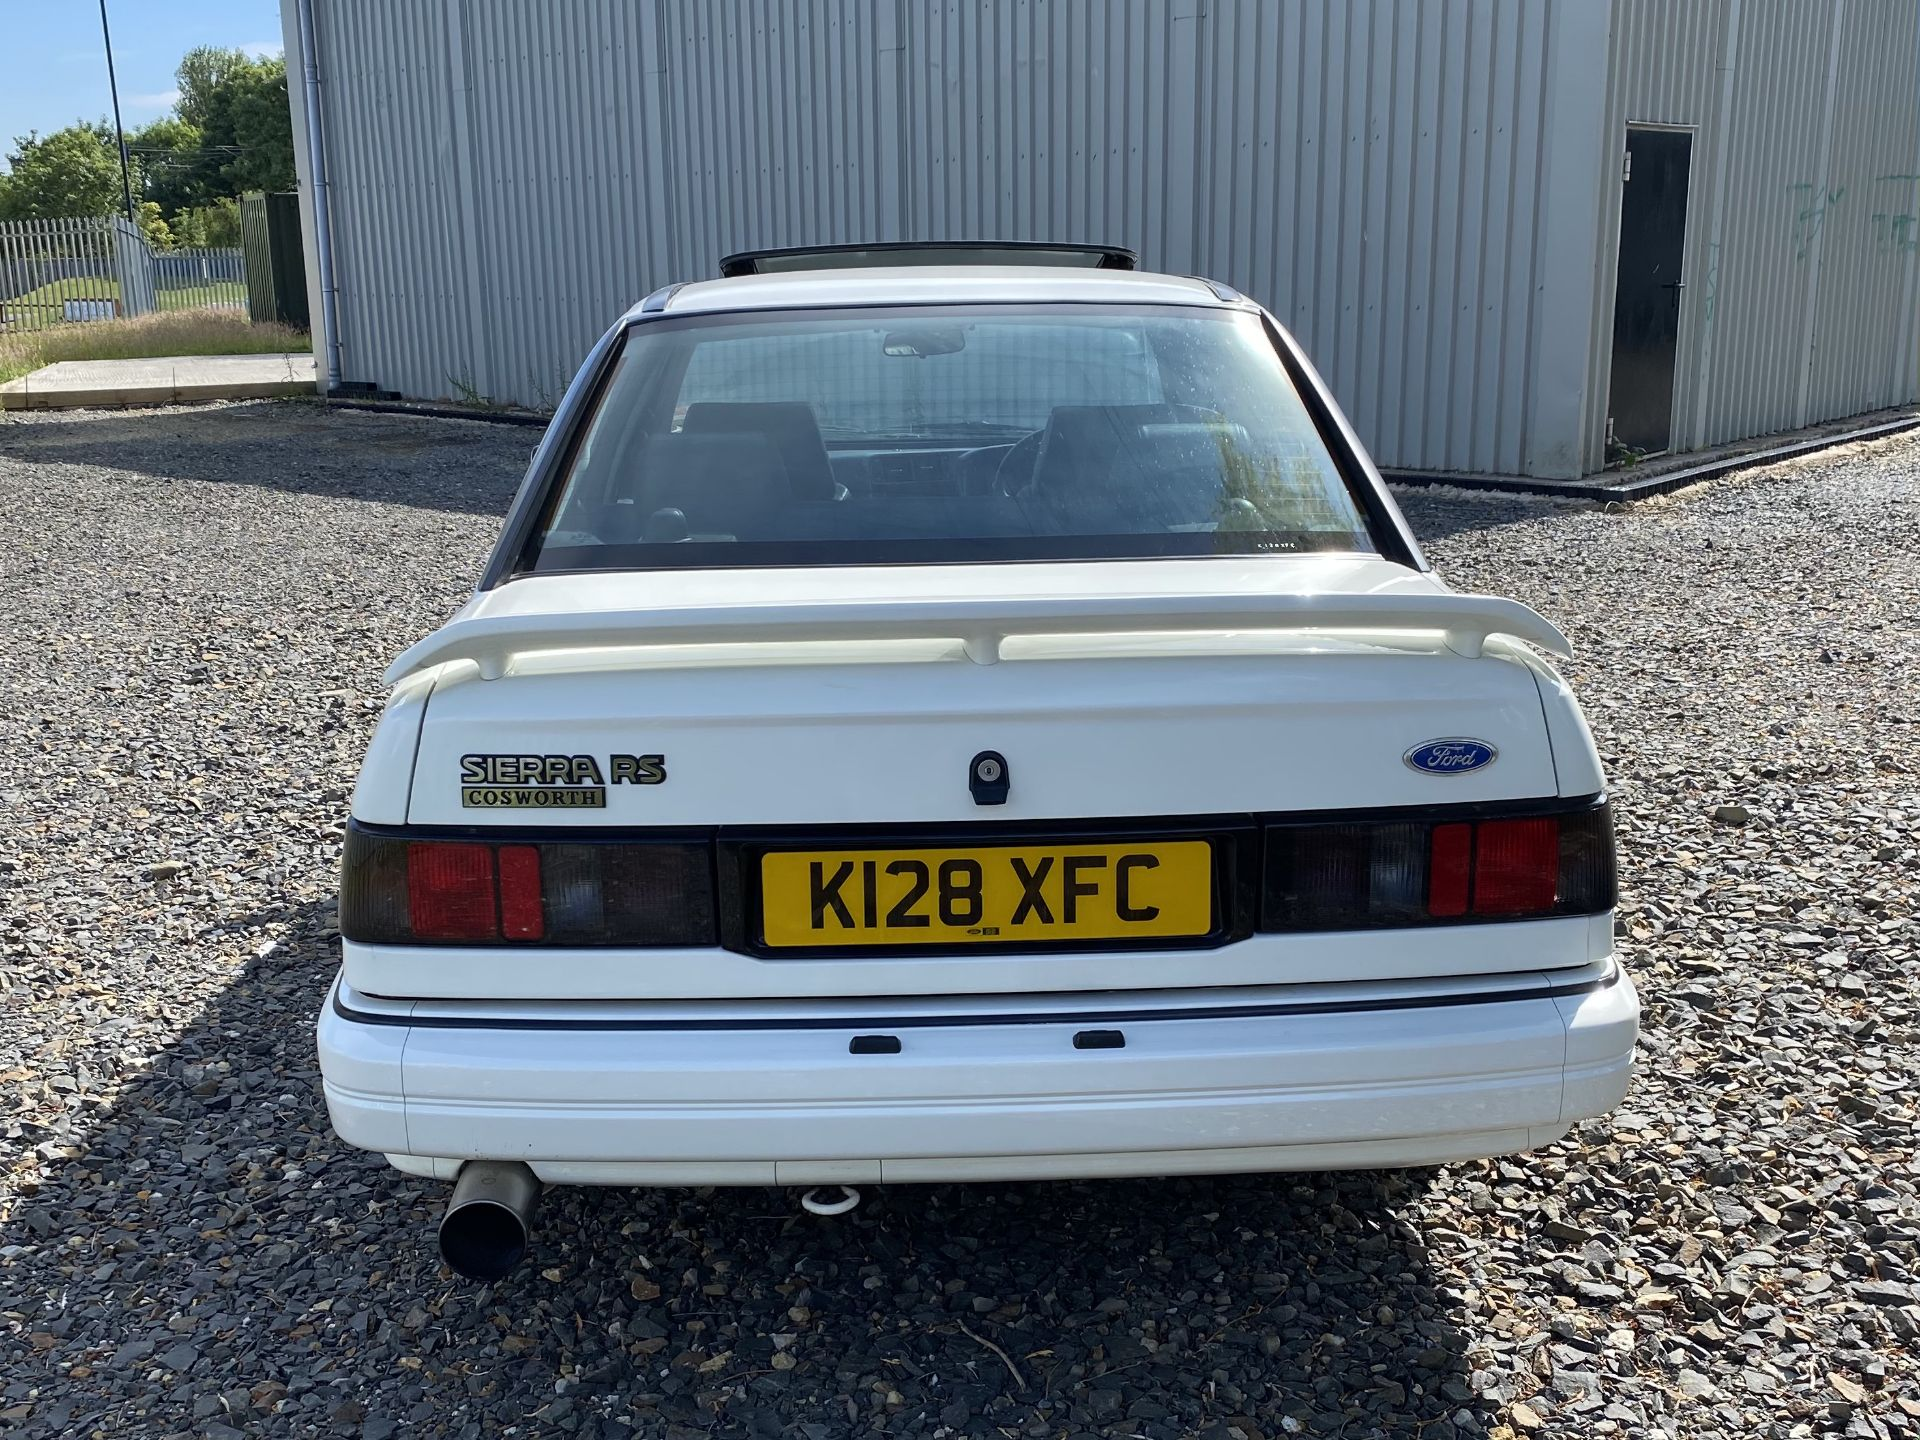 Ford Sierra Sapphire Cosworth 4x4 - Image 9 of 55